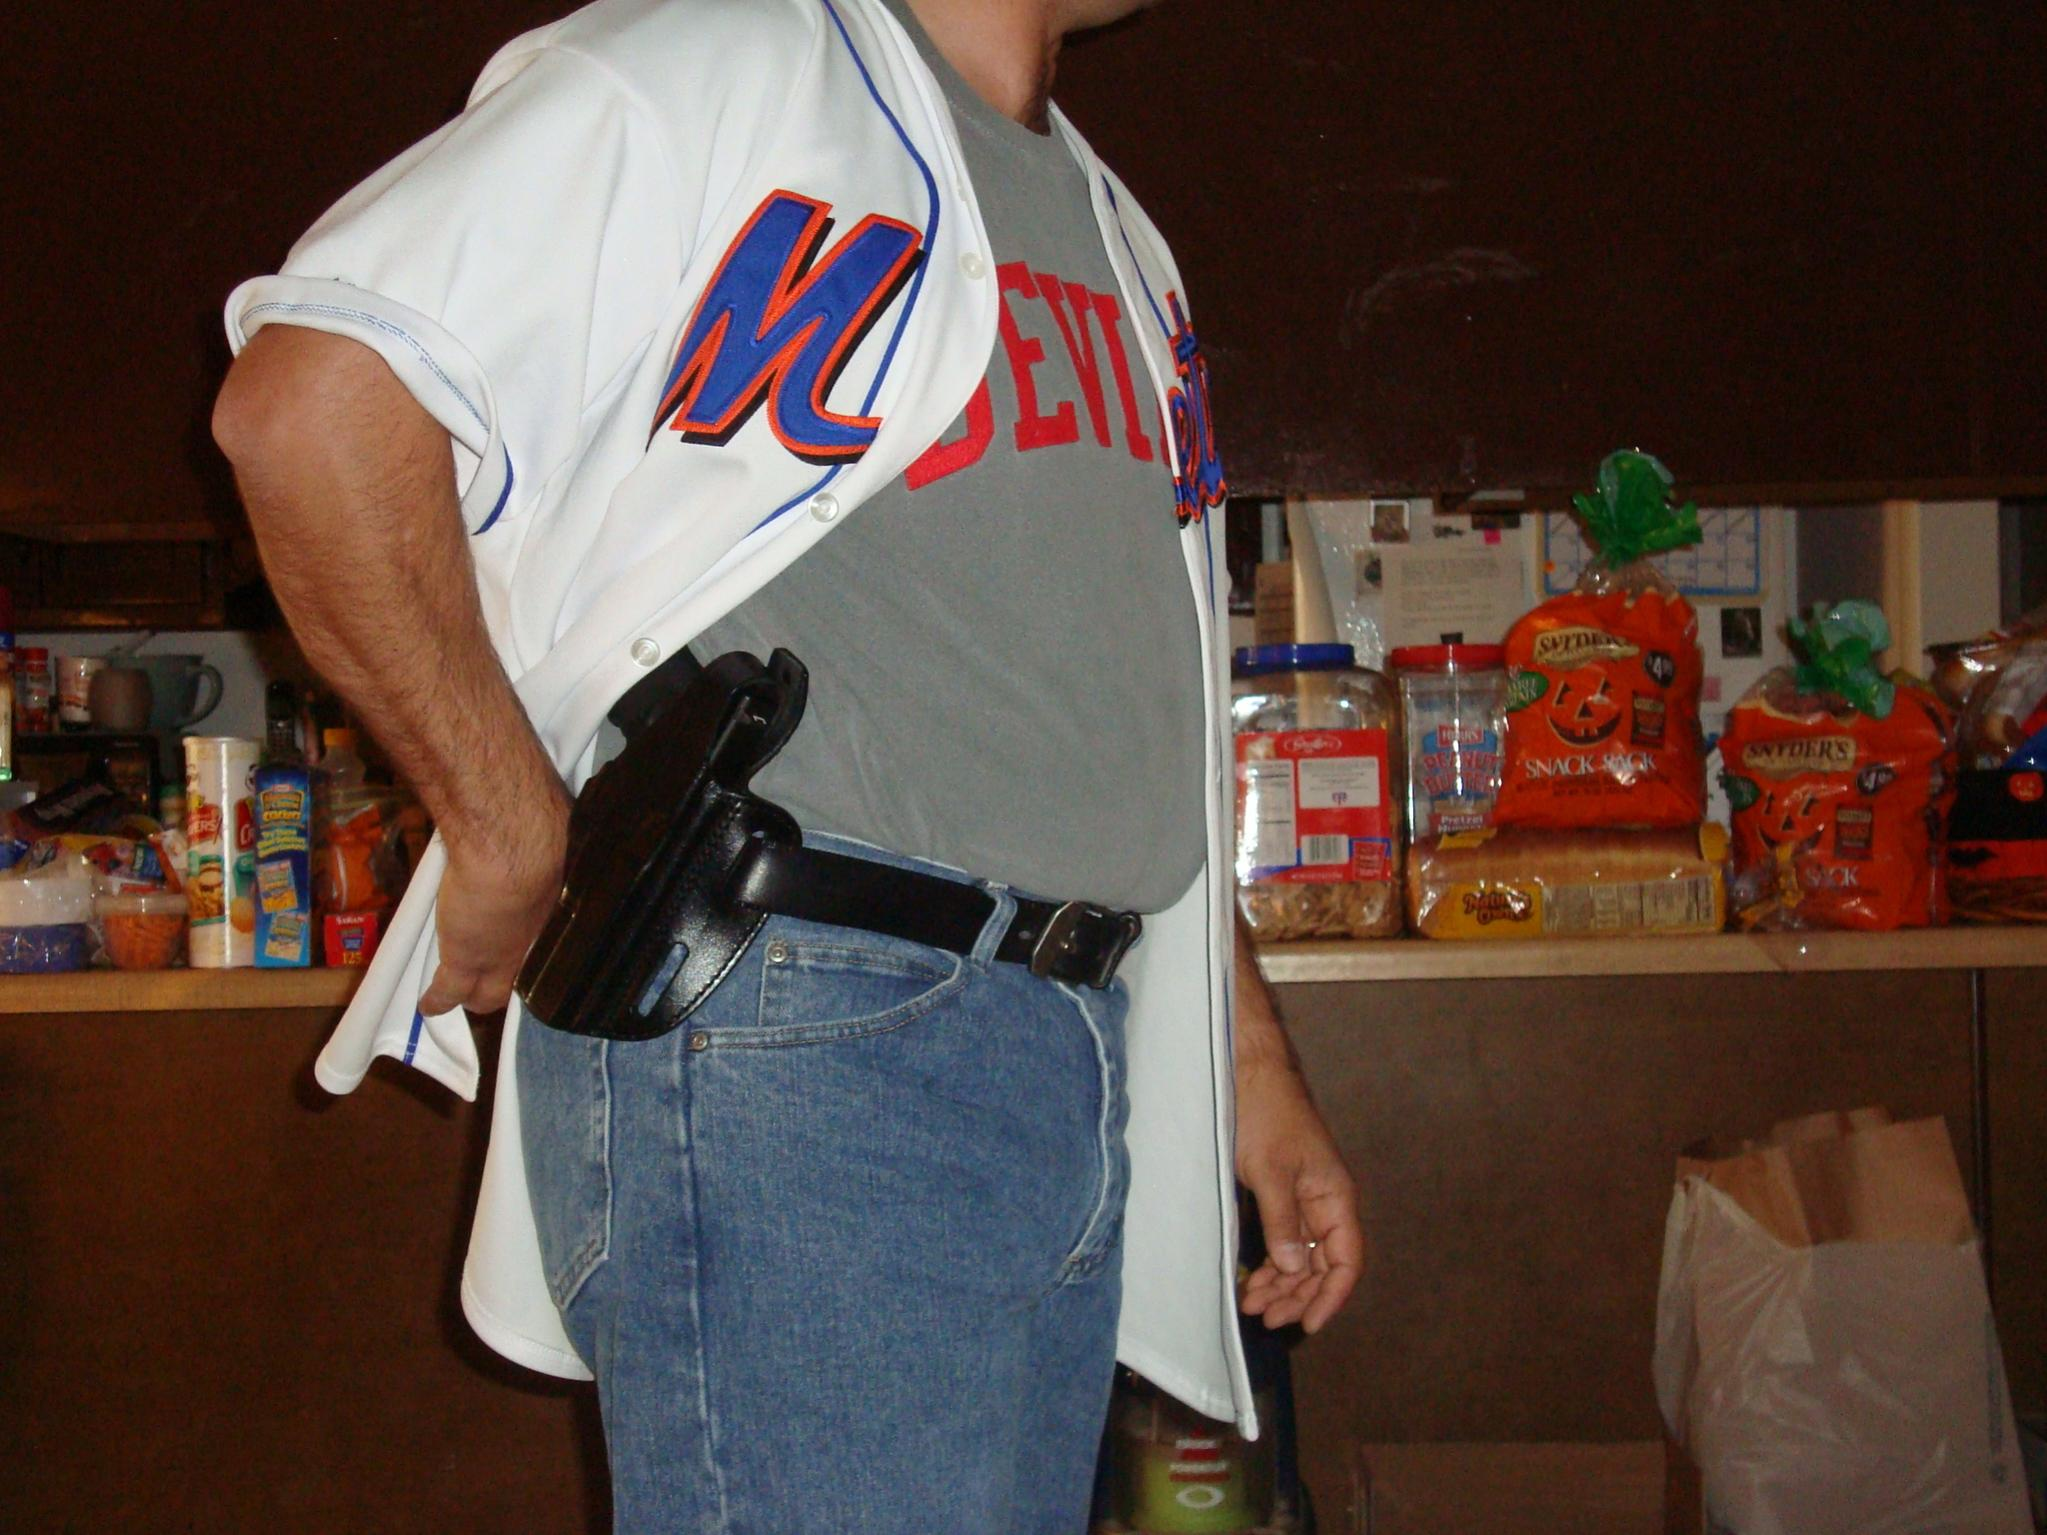 Let's See Your Pic's - How You Carry Concealed.-stuff-014.jpg